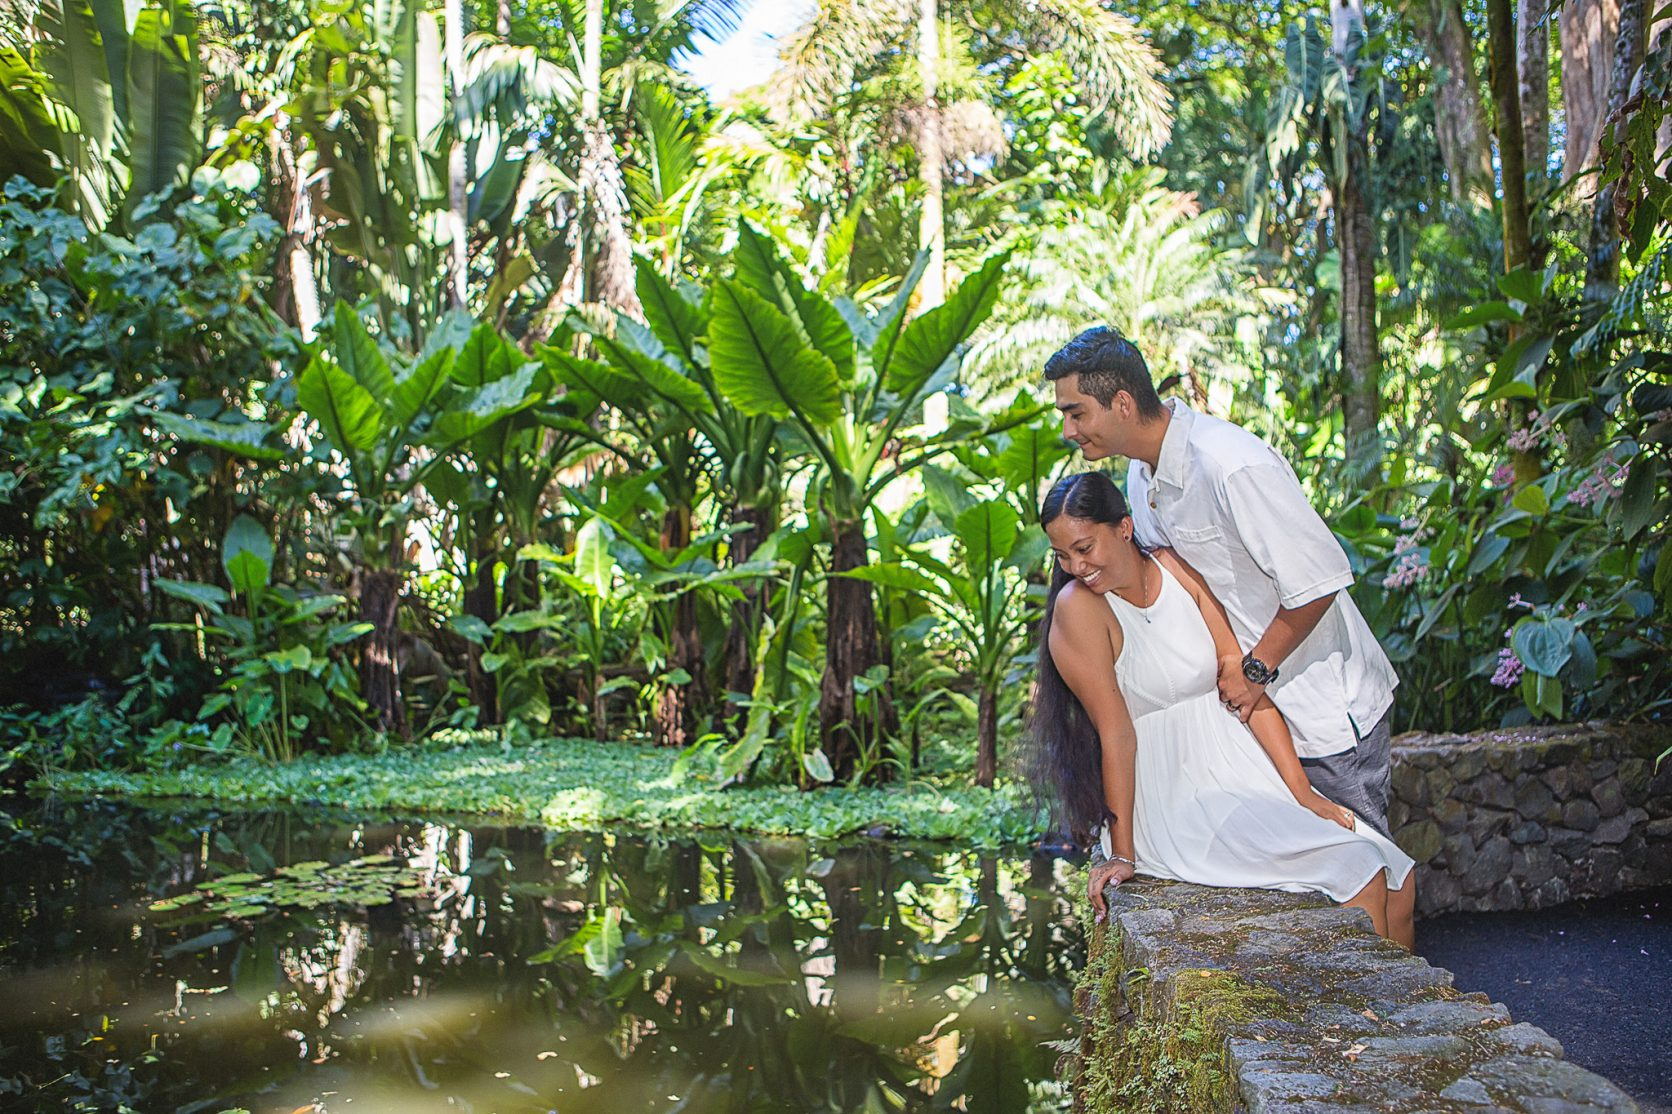 hawaii tropical botanical garden engagement photo session - hilo hawaii - big island engagement photographer